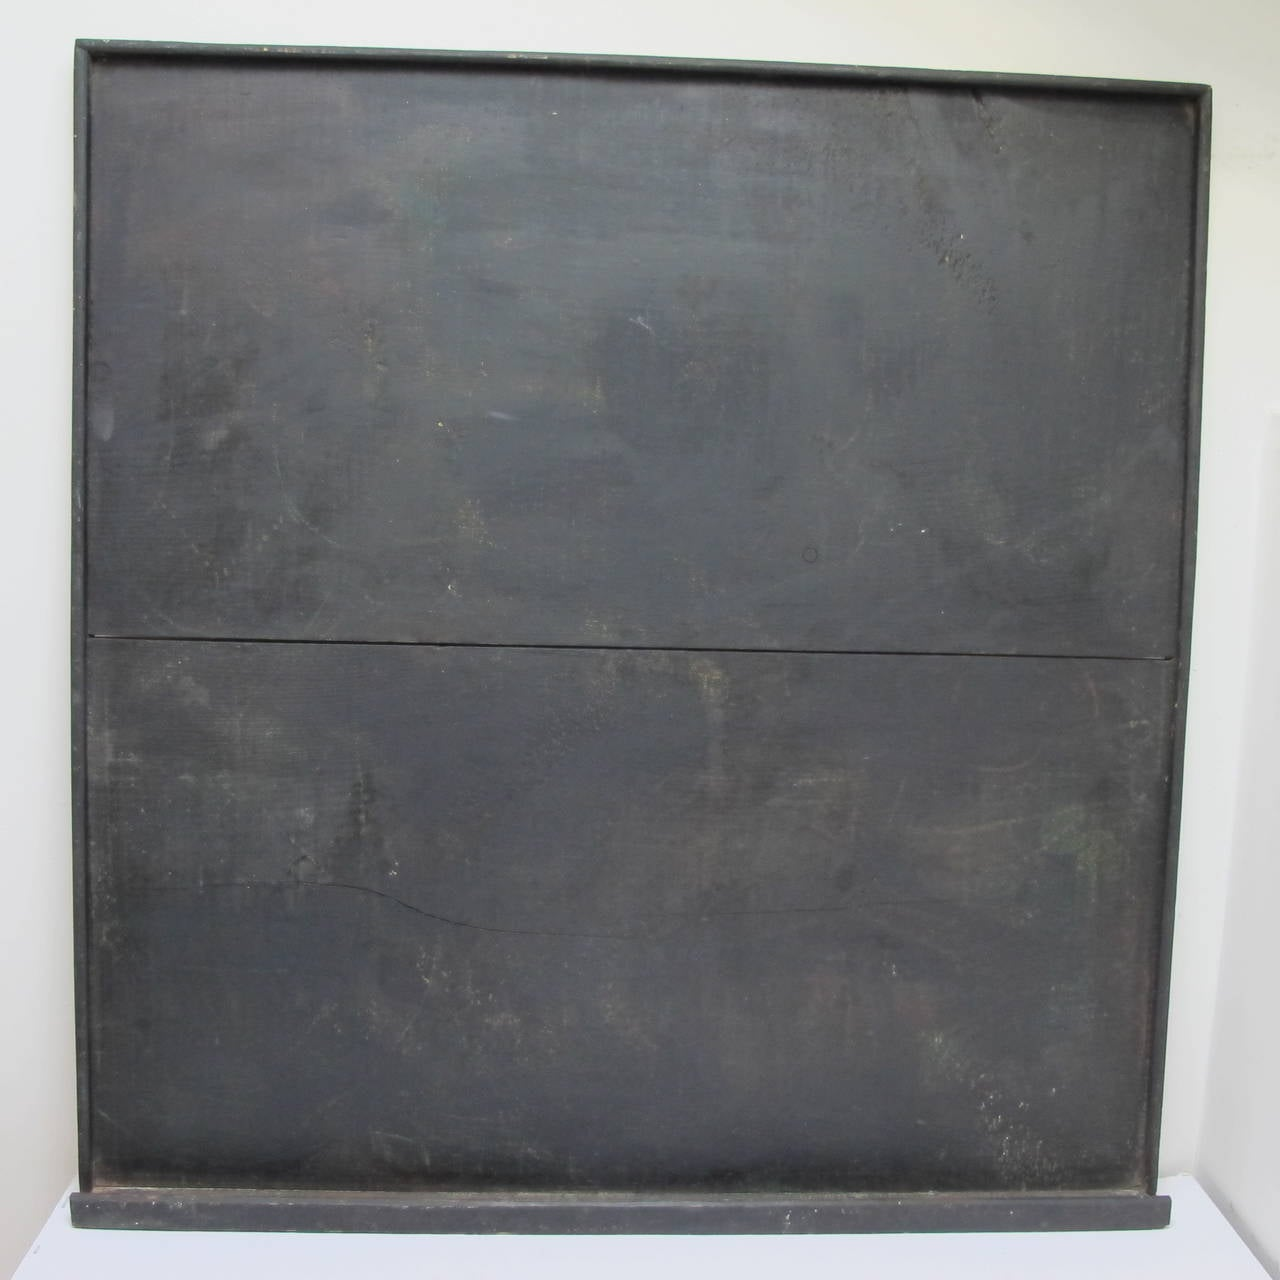 Early Wooden Blackboard With Tray For Sale At 1stdibs